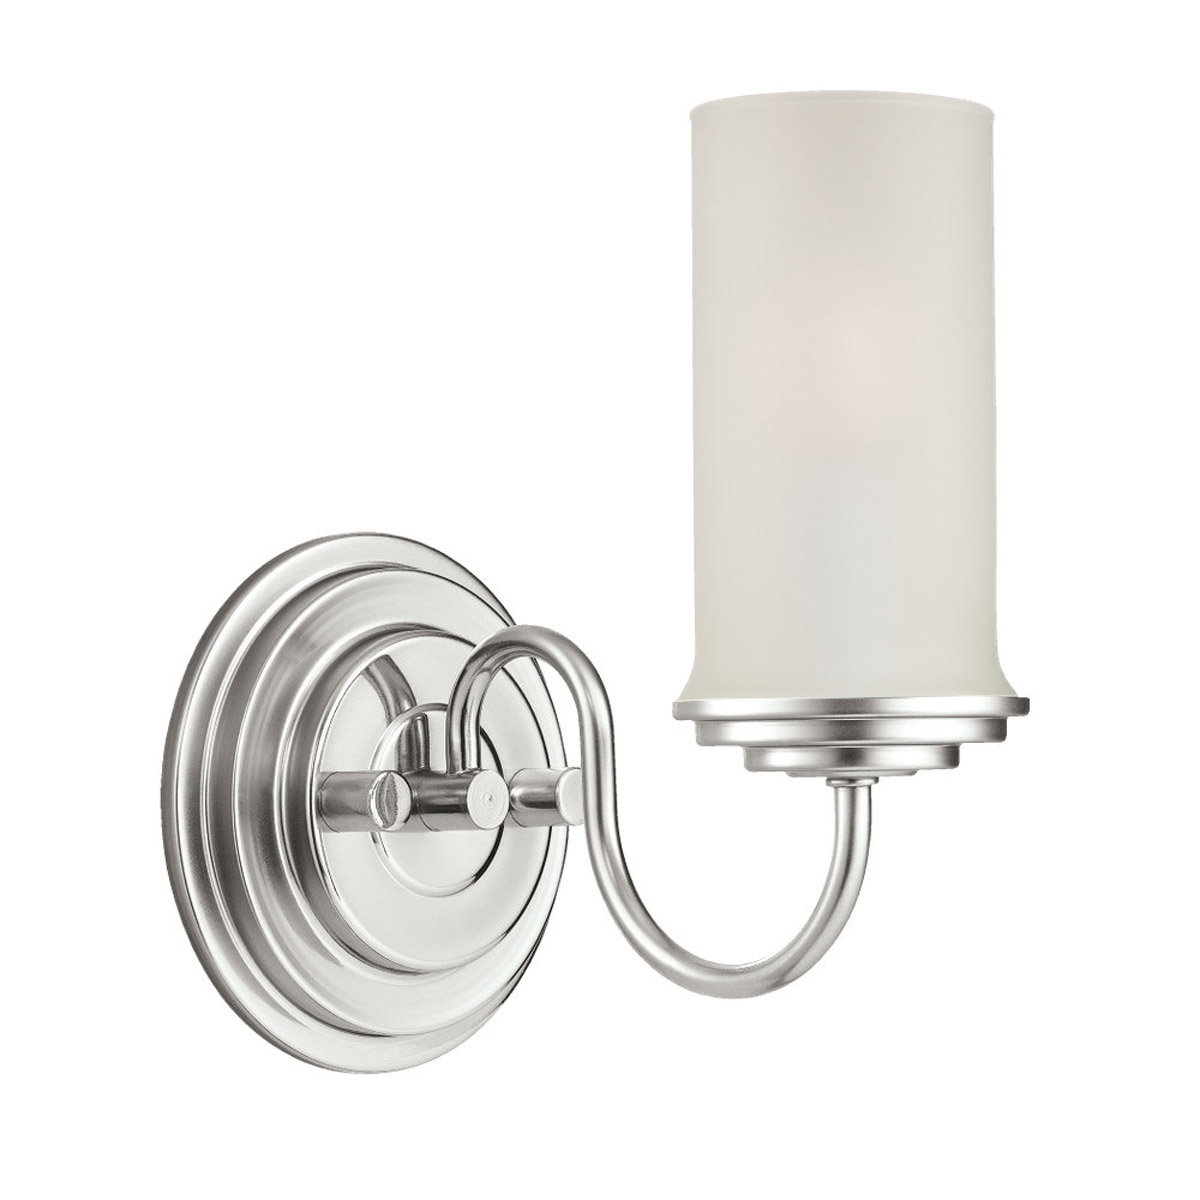 Sea Gull Lighting Wellington 1 Light Wall / Bath / Vanity in Polished Nickel 44655-841